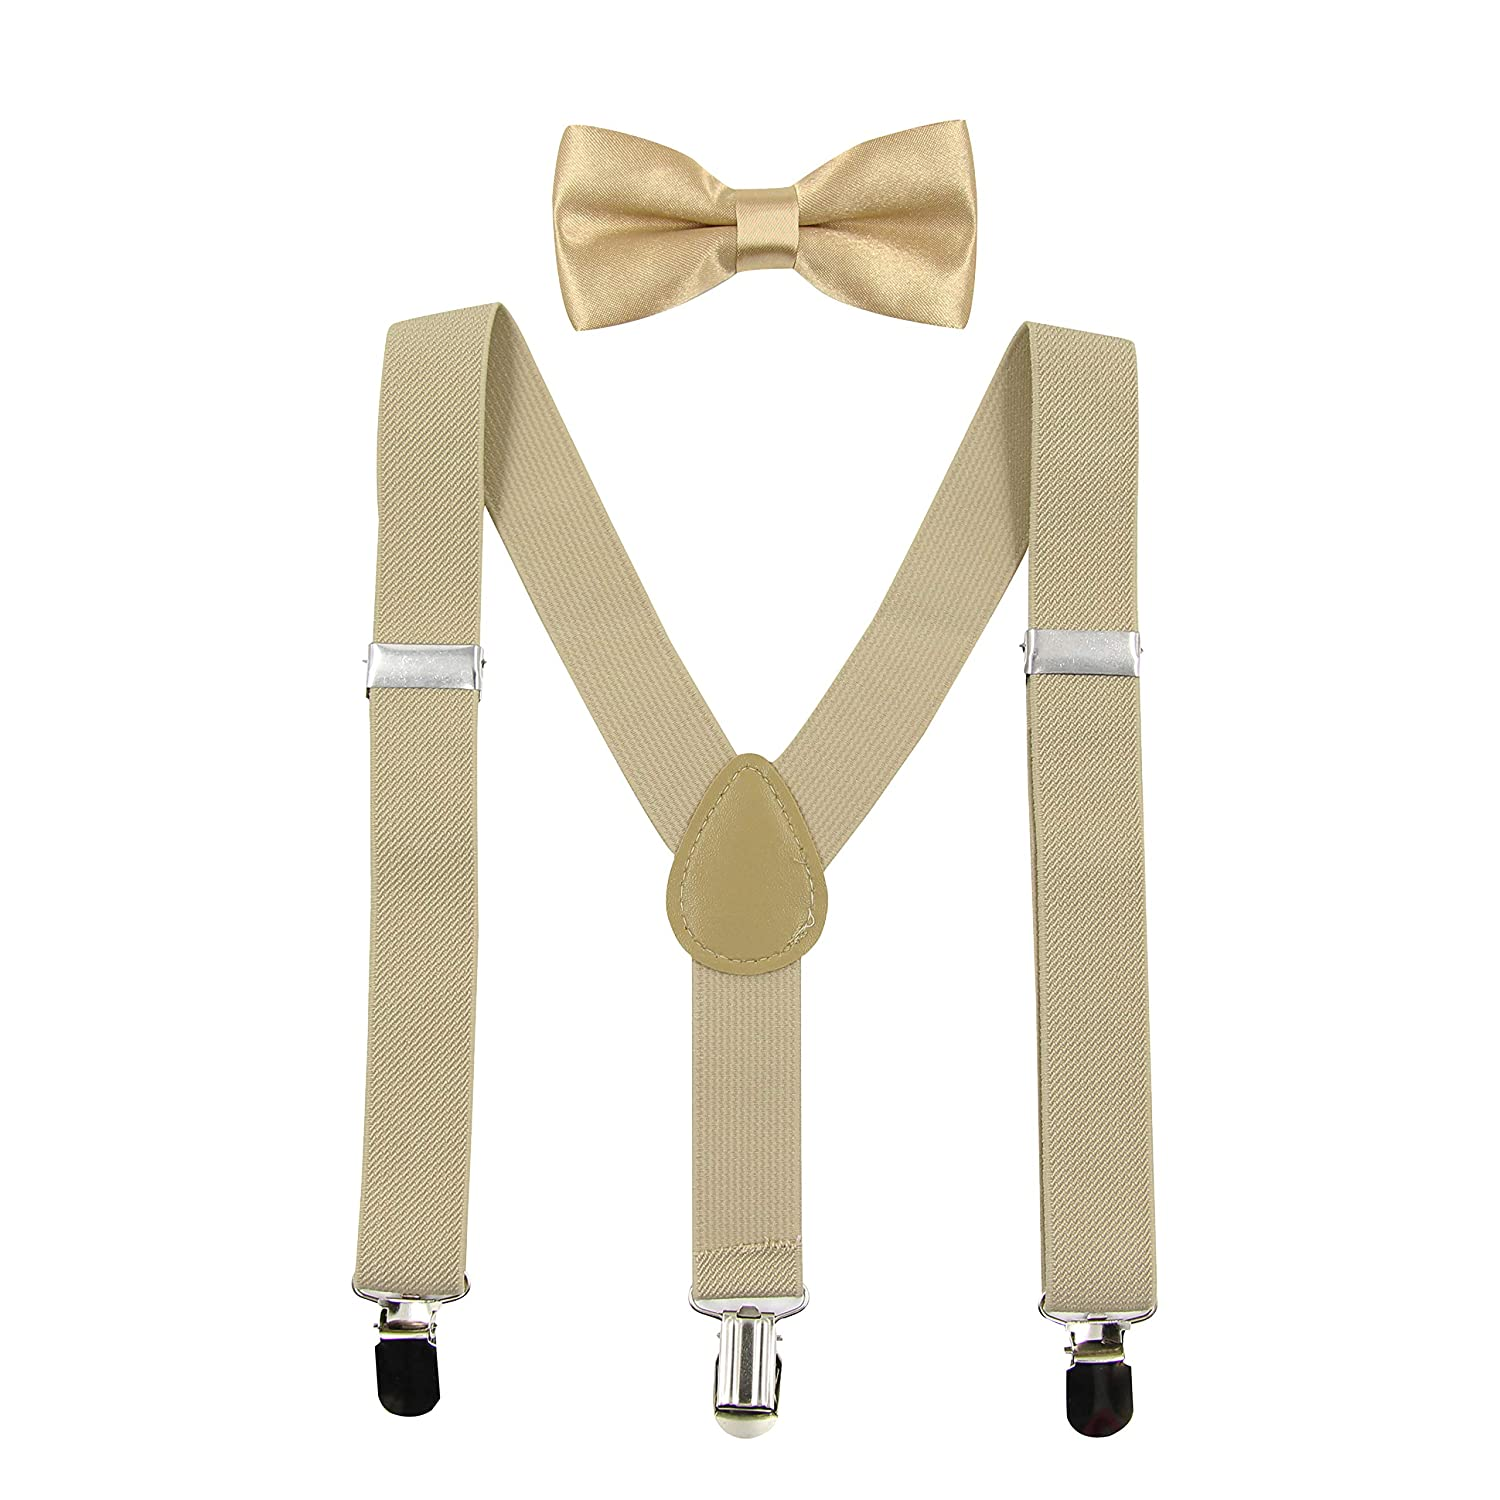 c505cc5a0e4c9 HANERDUN Kids Braces Bowtie Sets Adjustable Suspenders With Bow Ties Gift  Idea For Boys And Girls